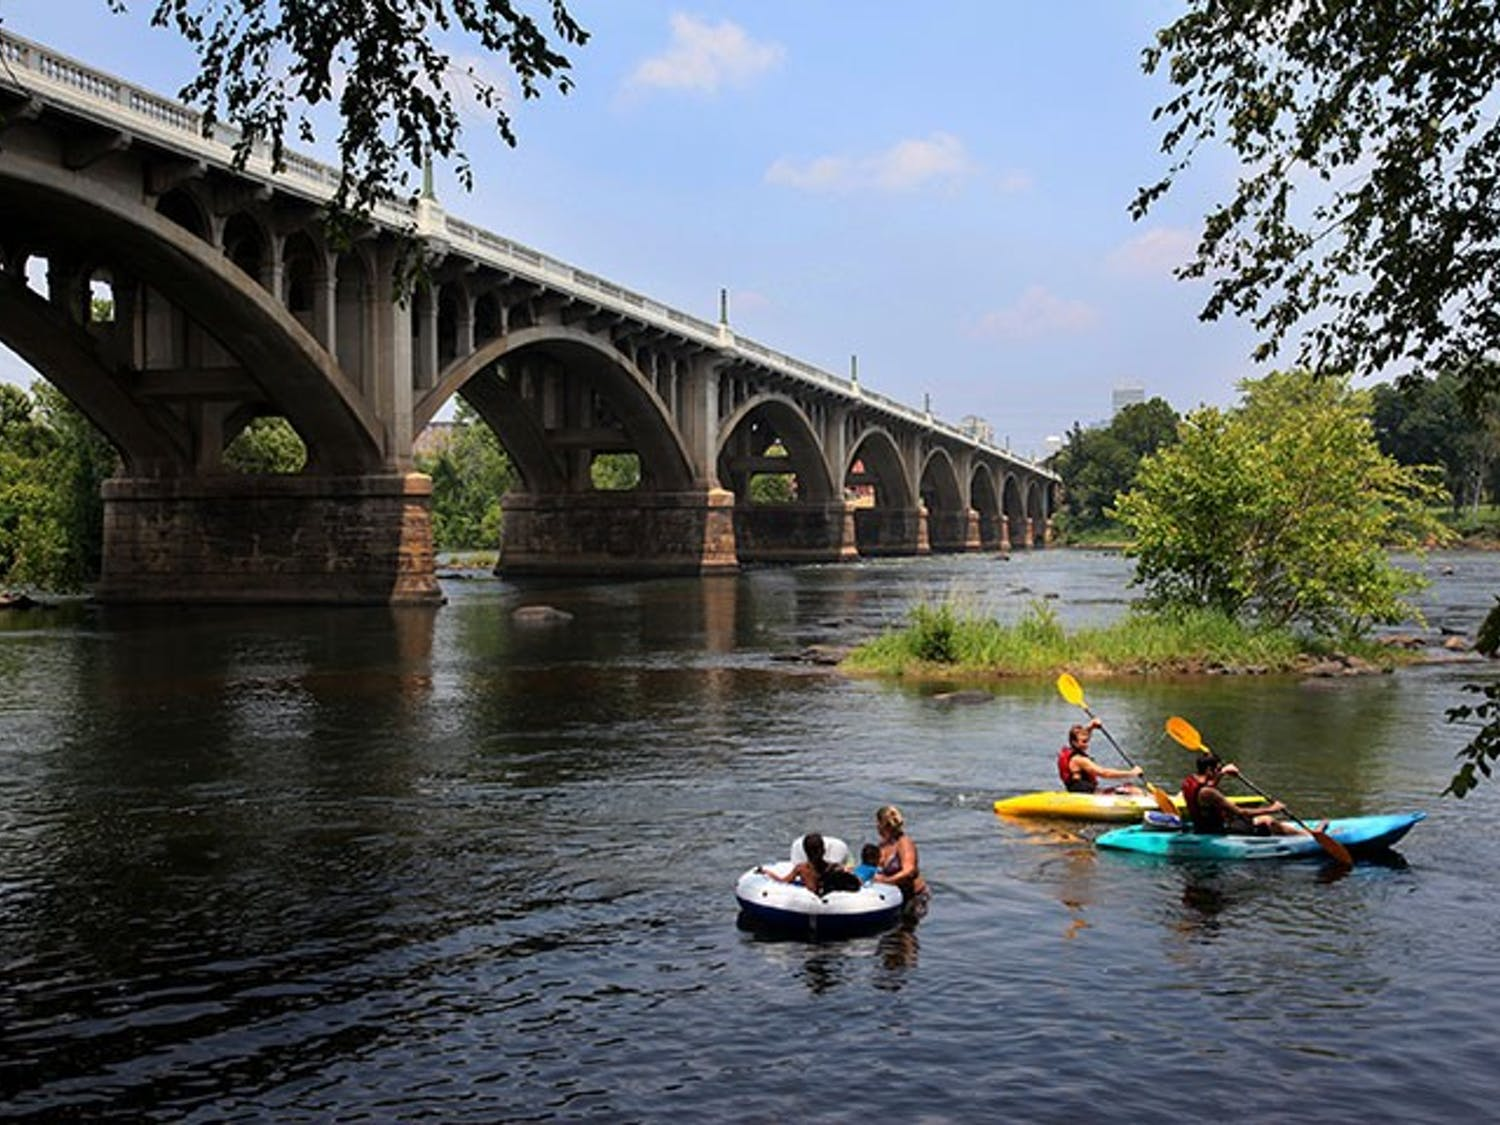 Tubers and kayakers enjoy the Congaree River, Tuesday, July 12, 2011 in Columbia, South Carolina. (Gerry Melendez/The State/MCT)